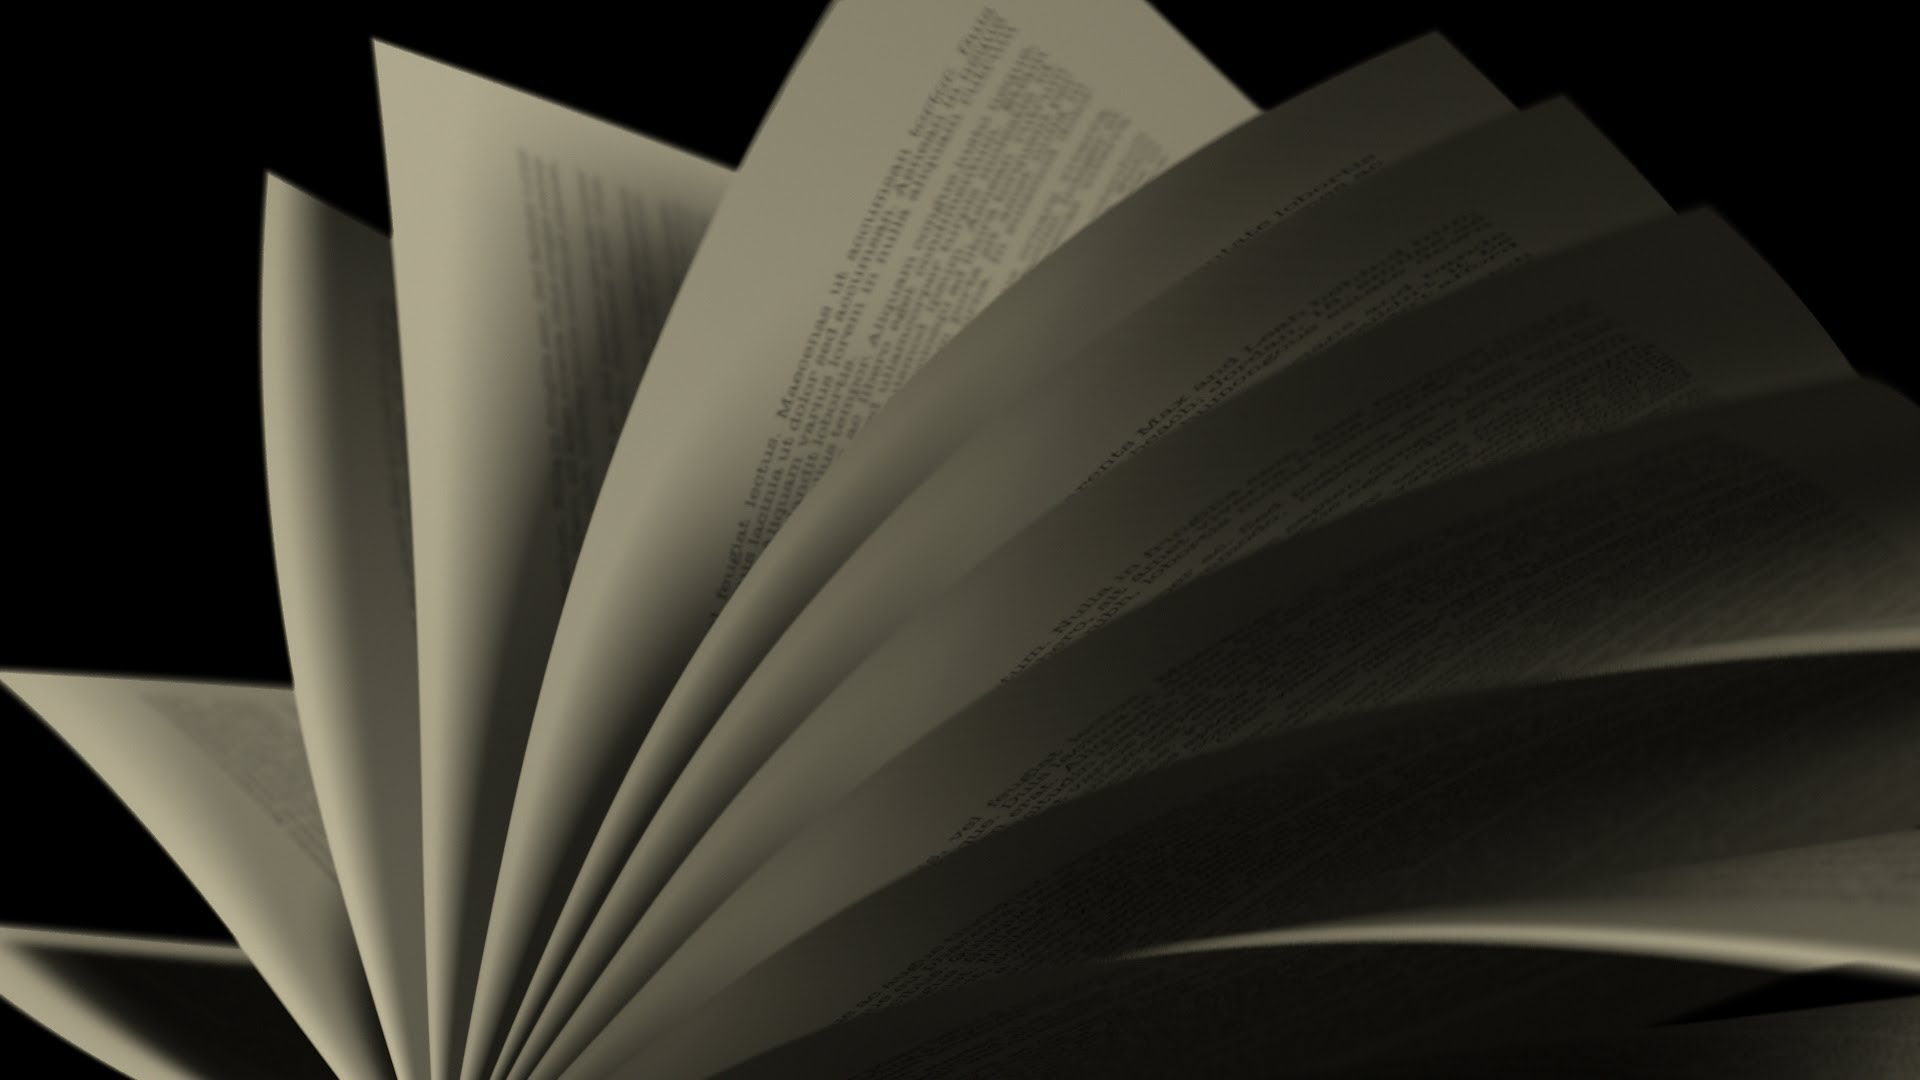 Pages in a book.jpg